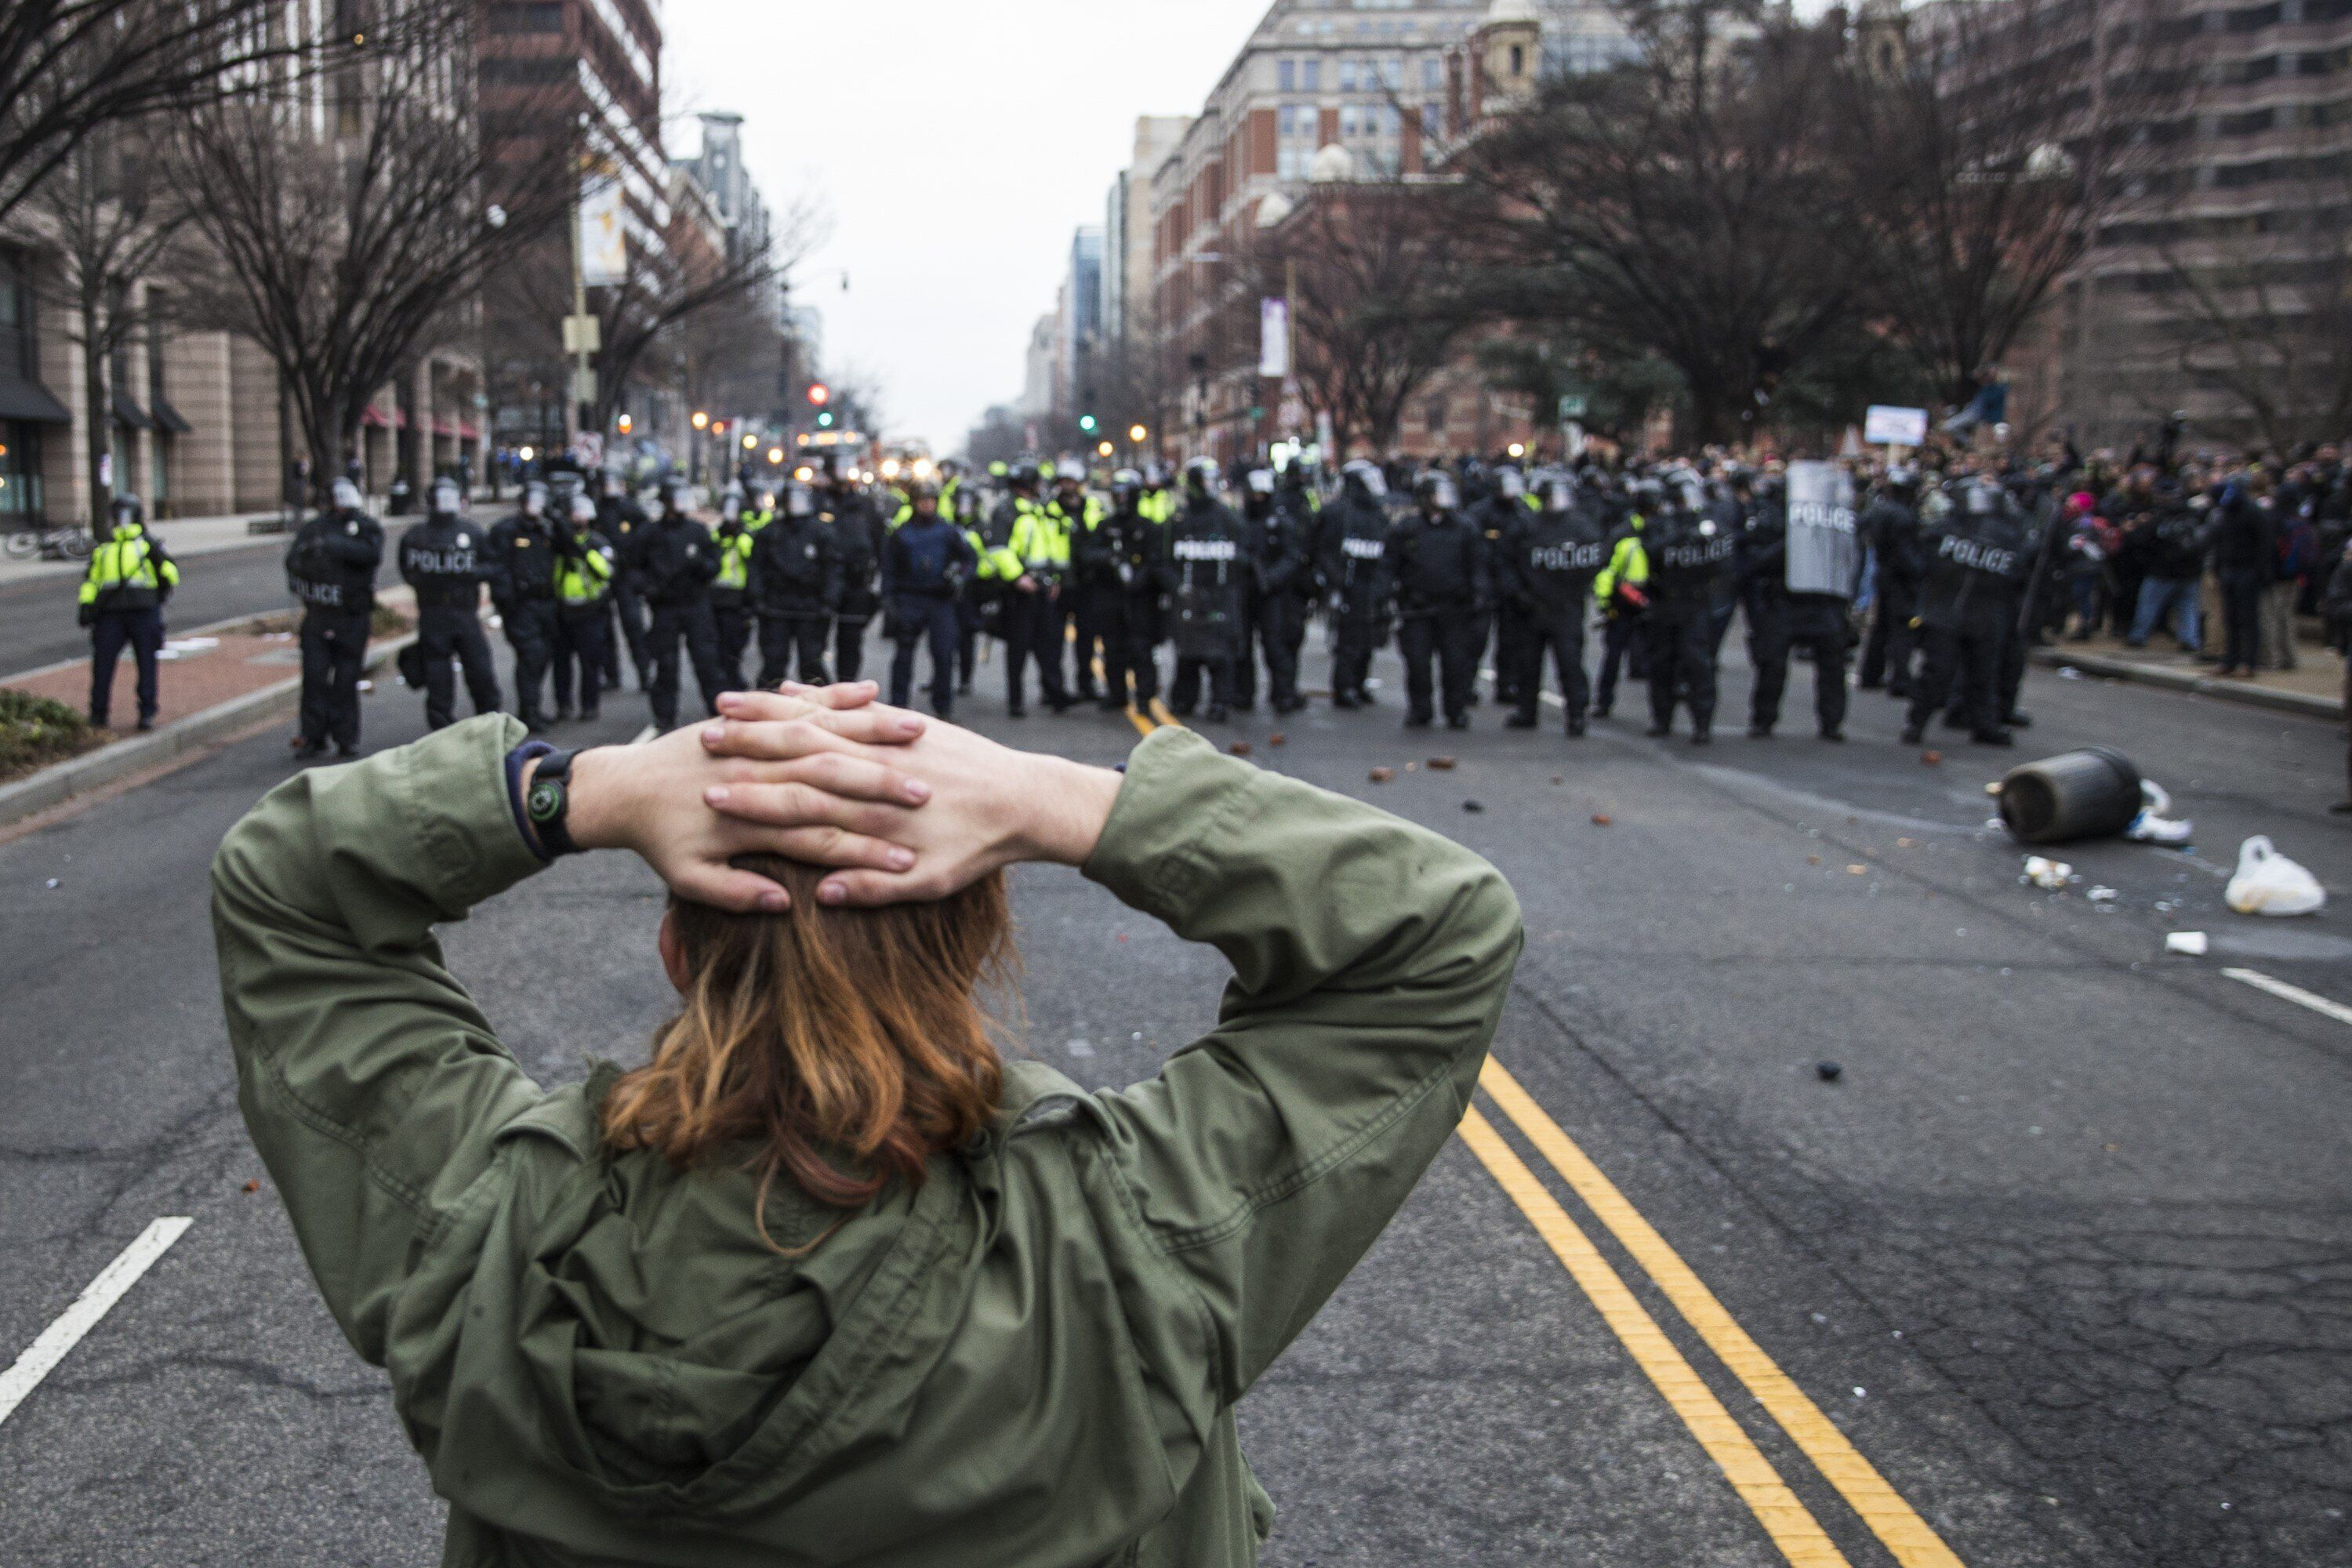 Anti-Trump protesters face off with police after Donald Trump was sworn into office in Washington, D.C. on January 20, 2017.&